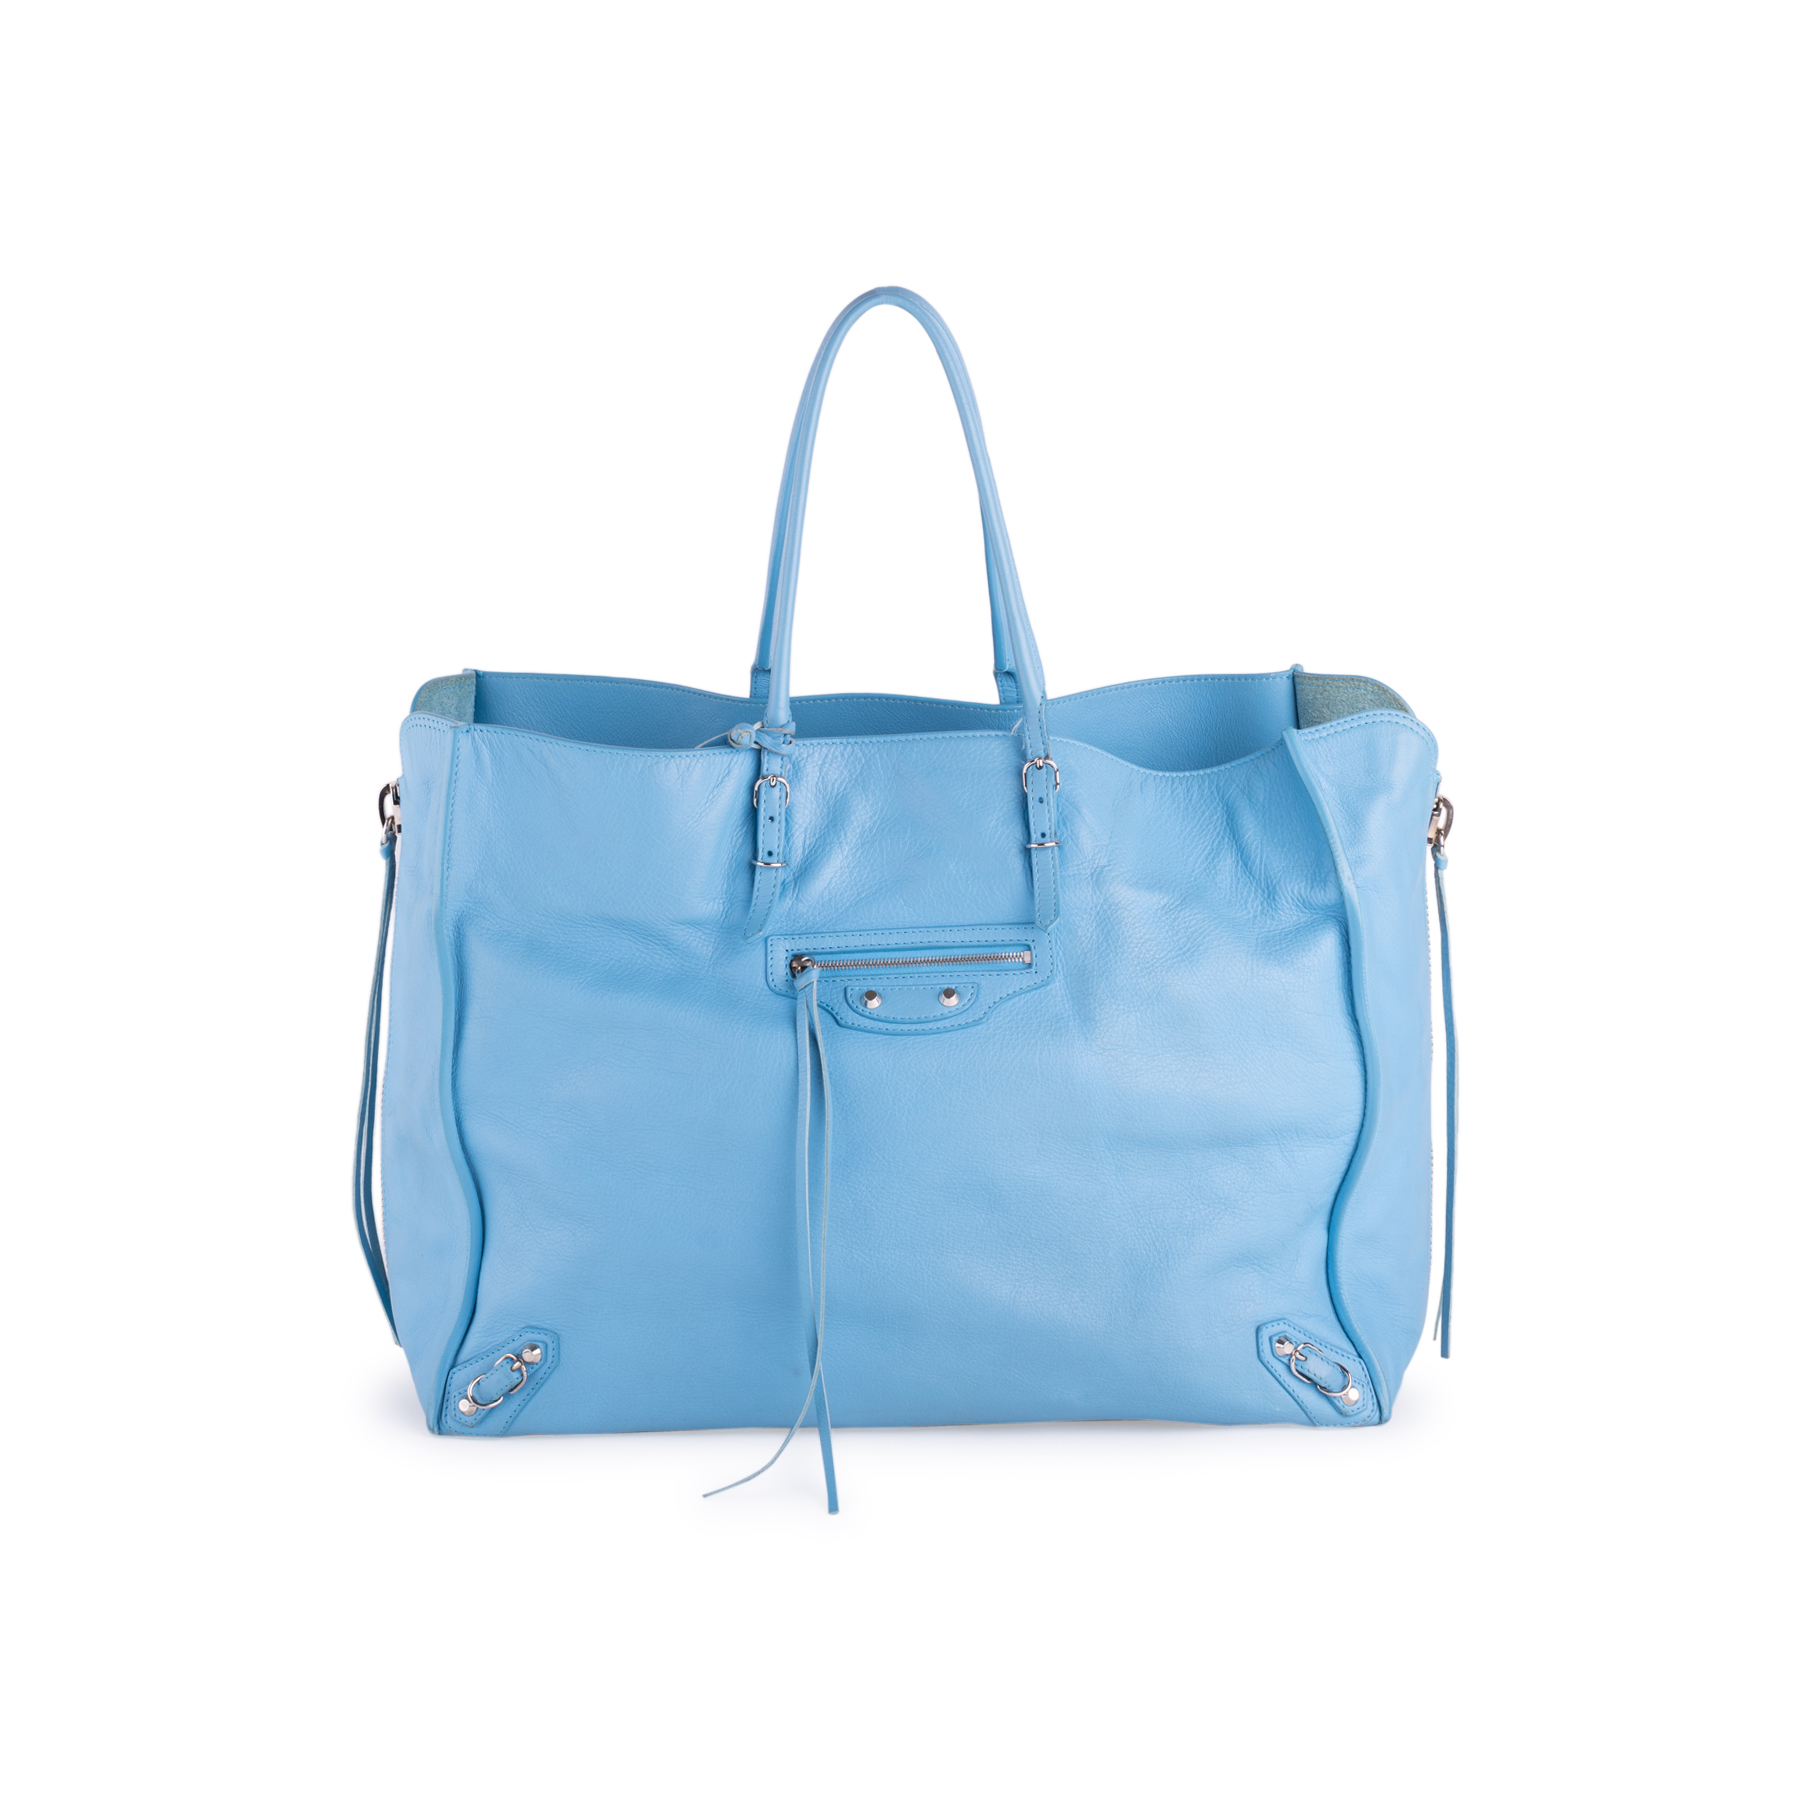 73bb0b4304d Authentic Second Hand Balenciaga Papier A4 Zip Around Tote Bag  (PSS-636-00007) - THE FIFTH COLLECTION